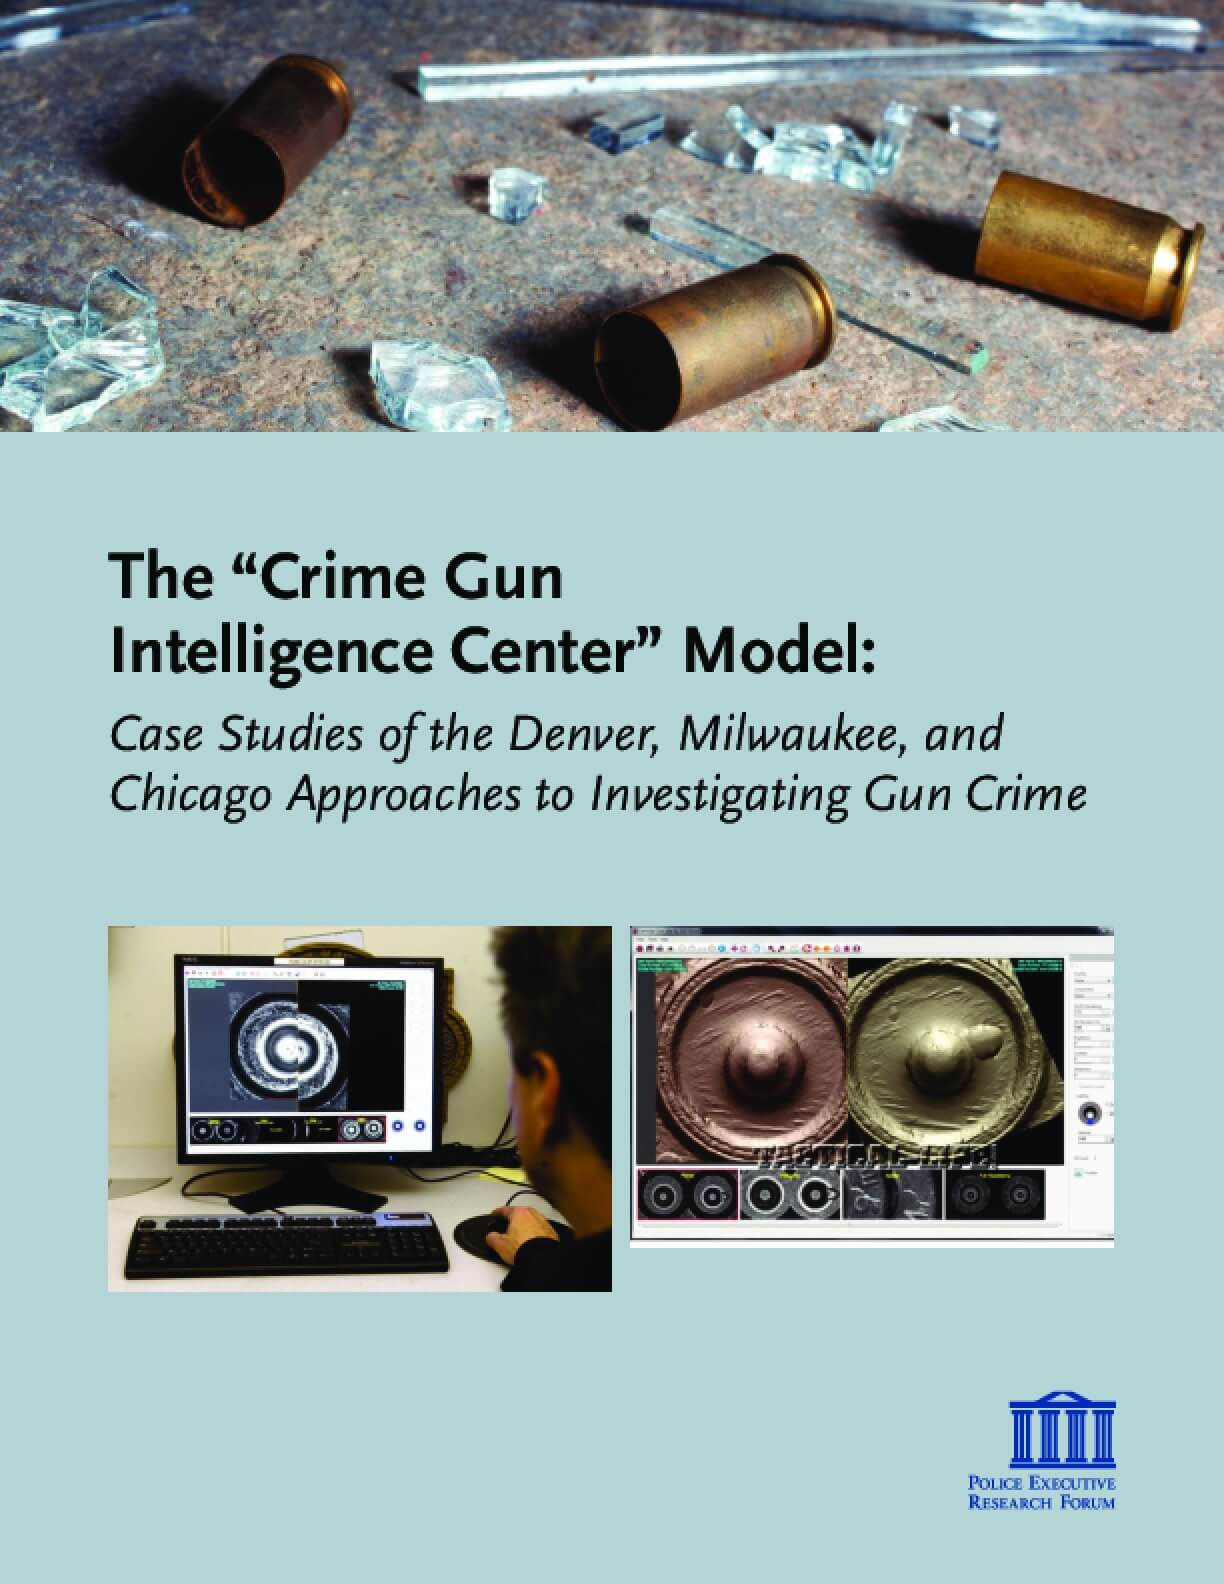 """The """"Crime Gun Intelligence Center"""" Model: Case Studies of the Denver, Milwaukee and Chicago Approaches to Investigating Gun Crime"""